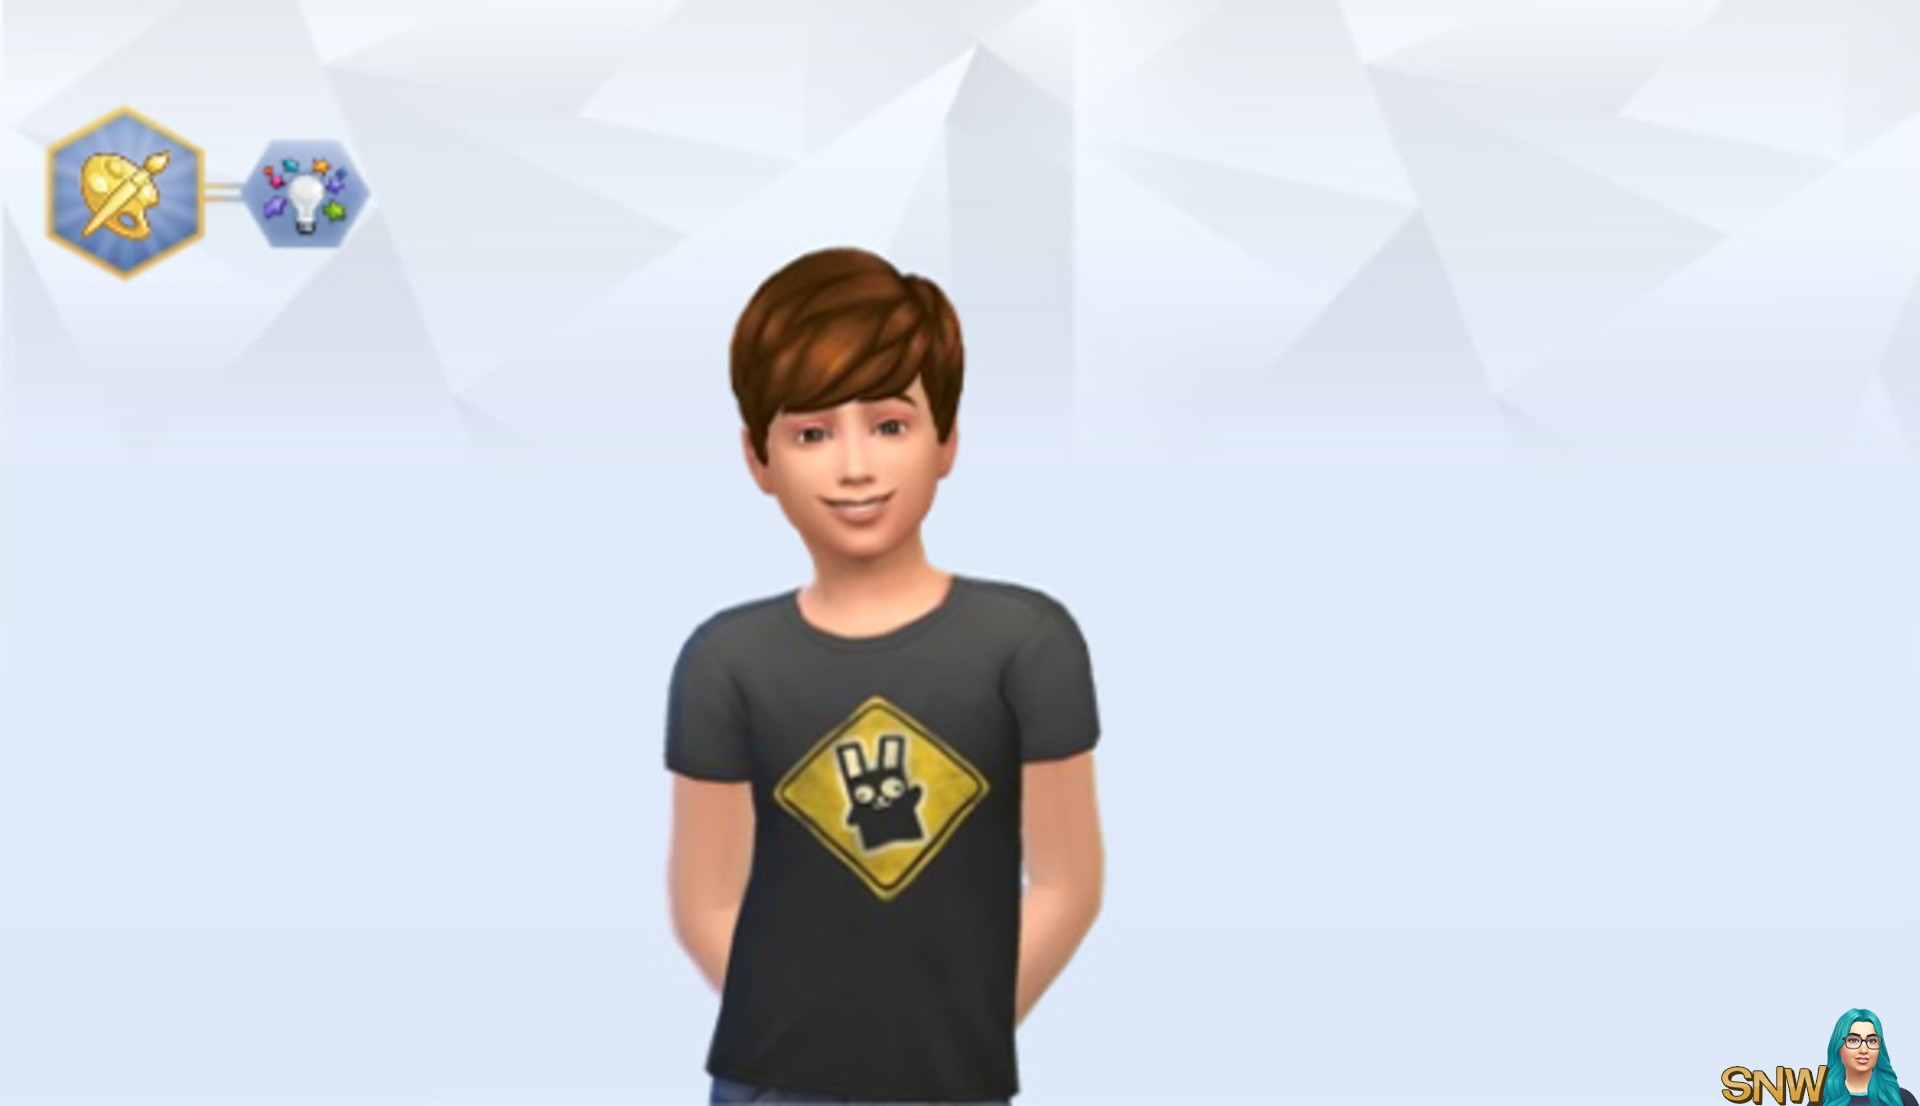 My family in The Sims 4 | SNW | SimsNetwork com